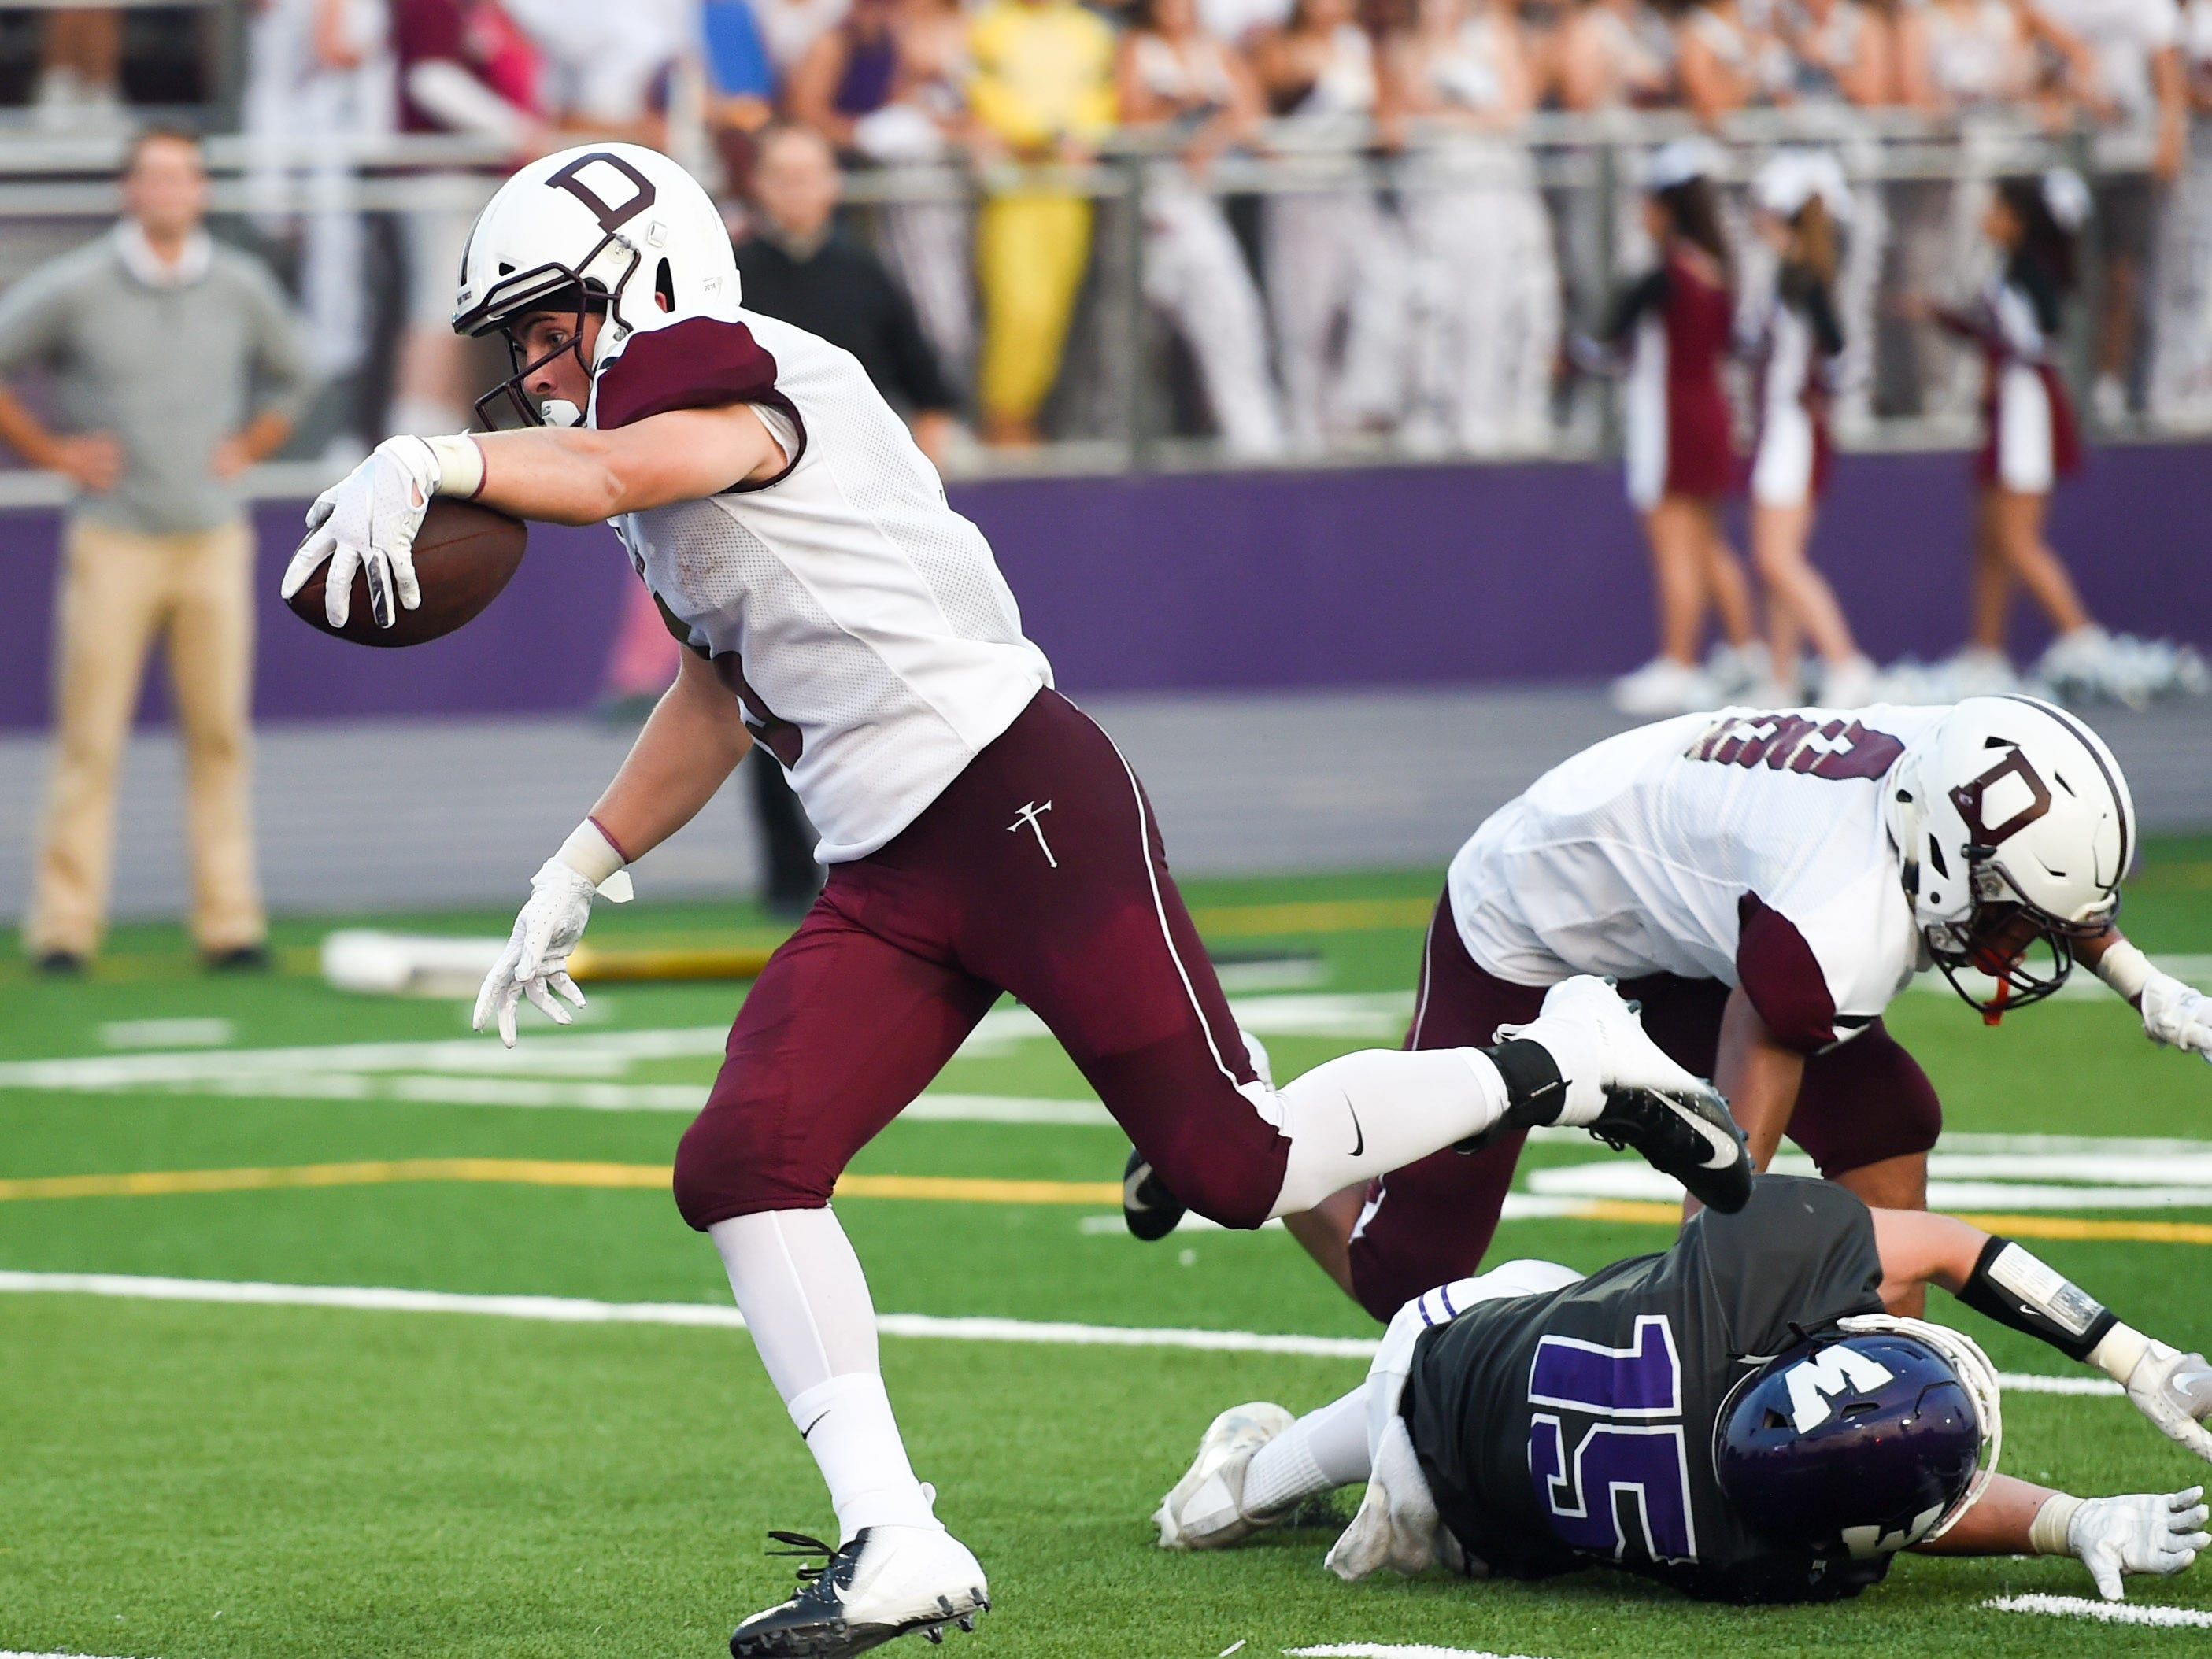 Dowling's Collin Cook (5) breaks through for a touchdown on Friday, August 24, 2018 during a football game between the Waukee Warriors and the Dowling Catholic Maroons at Waukee High School.